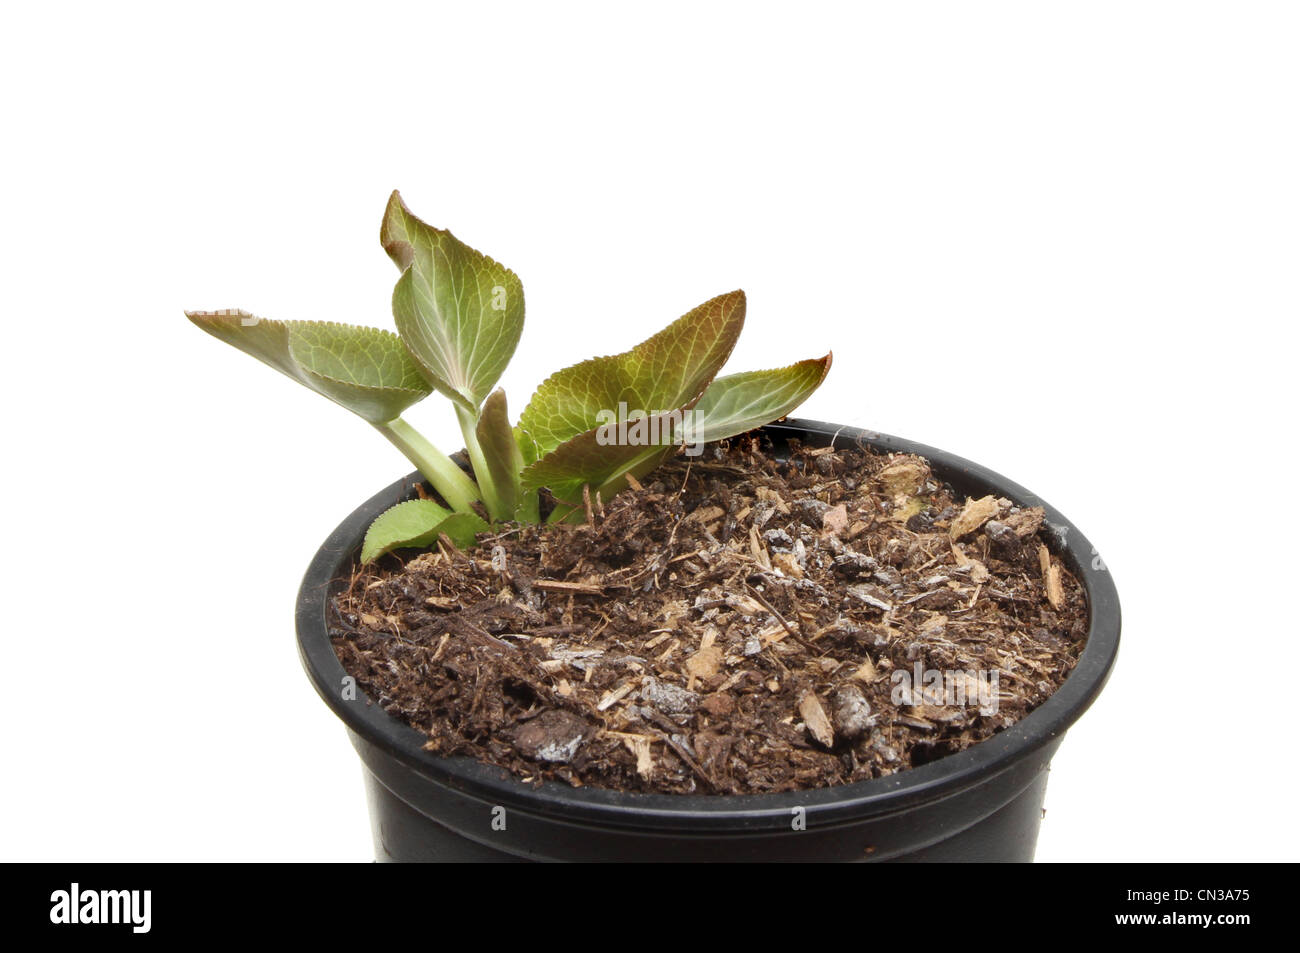 Closeup of an Eryngium plant seedling in a pot isolated against white - Stock Image